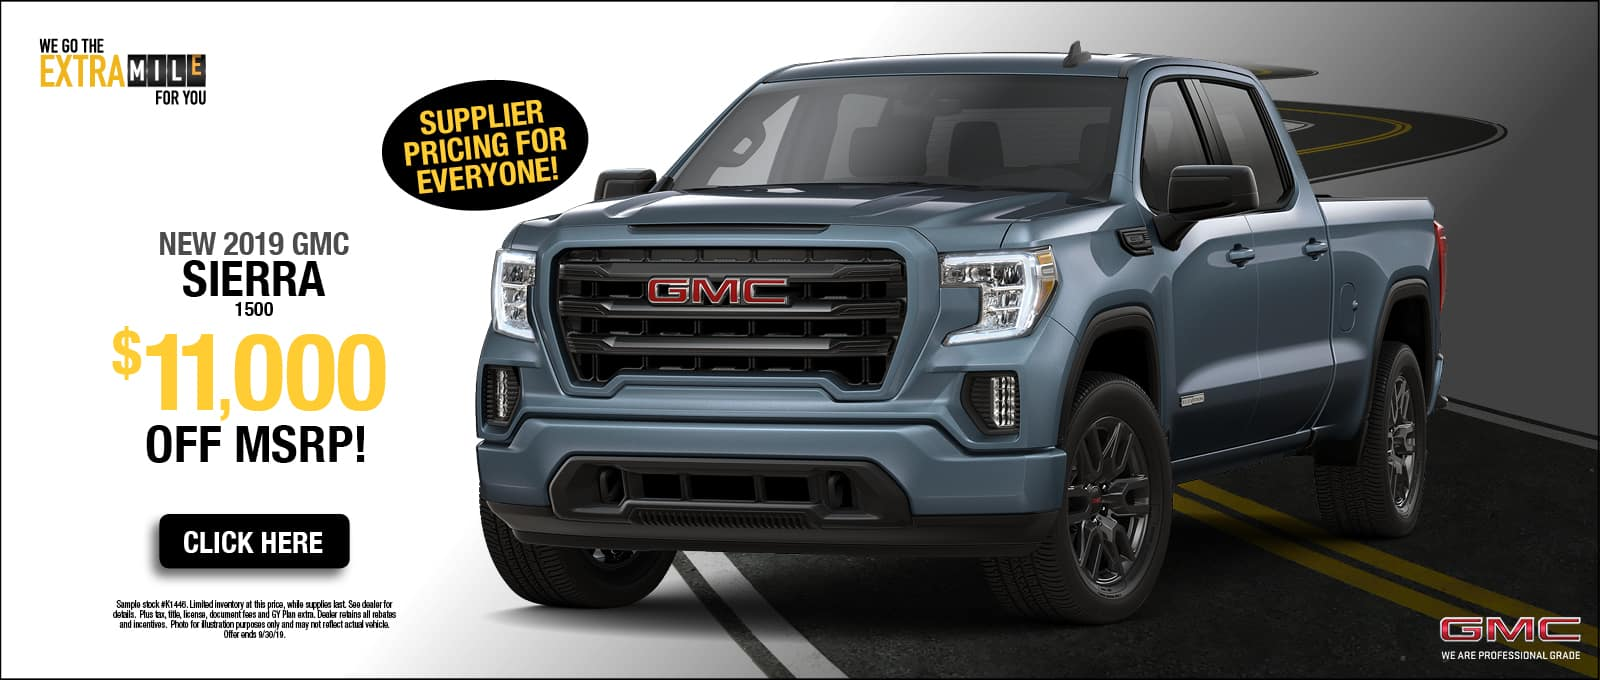 Buick, GMC Dealer in Indianola, IA | Gregg Young Buick GMC